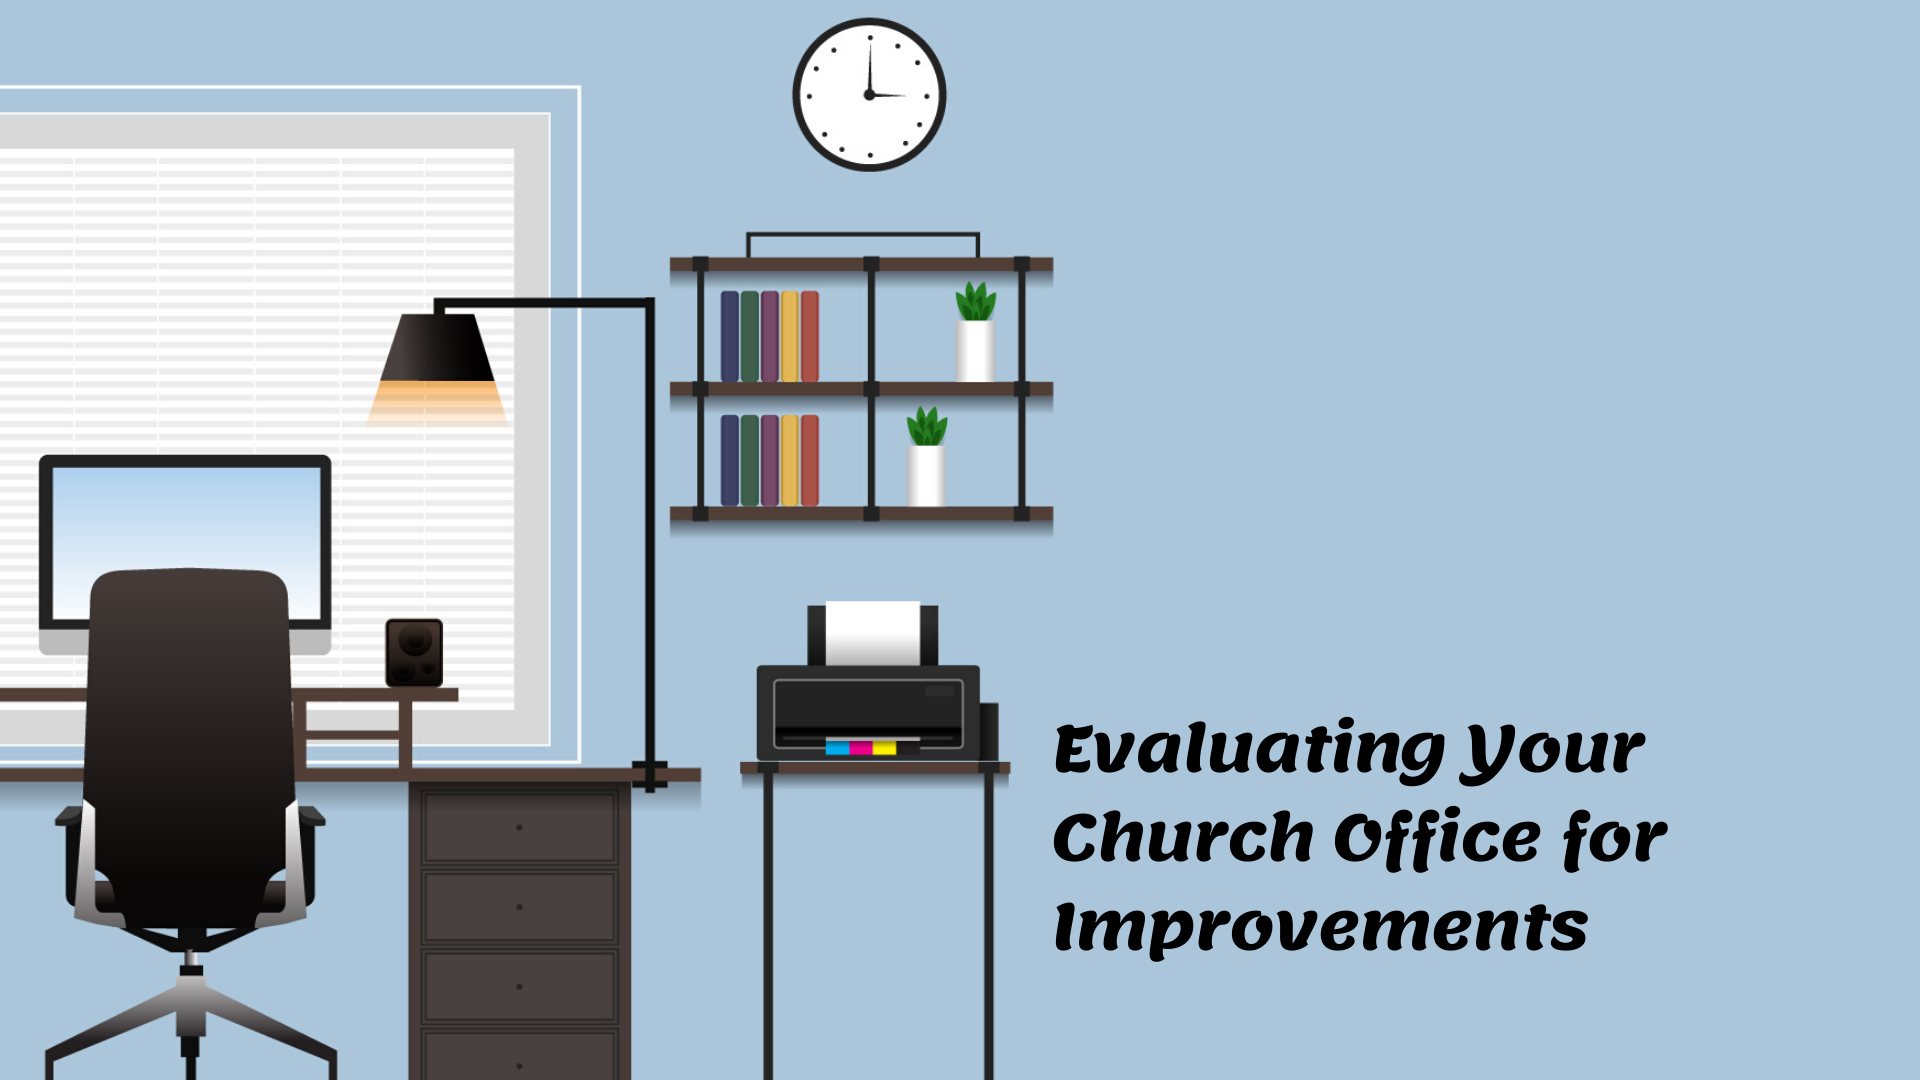 blog_evaluating-church-office